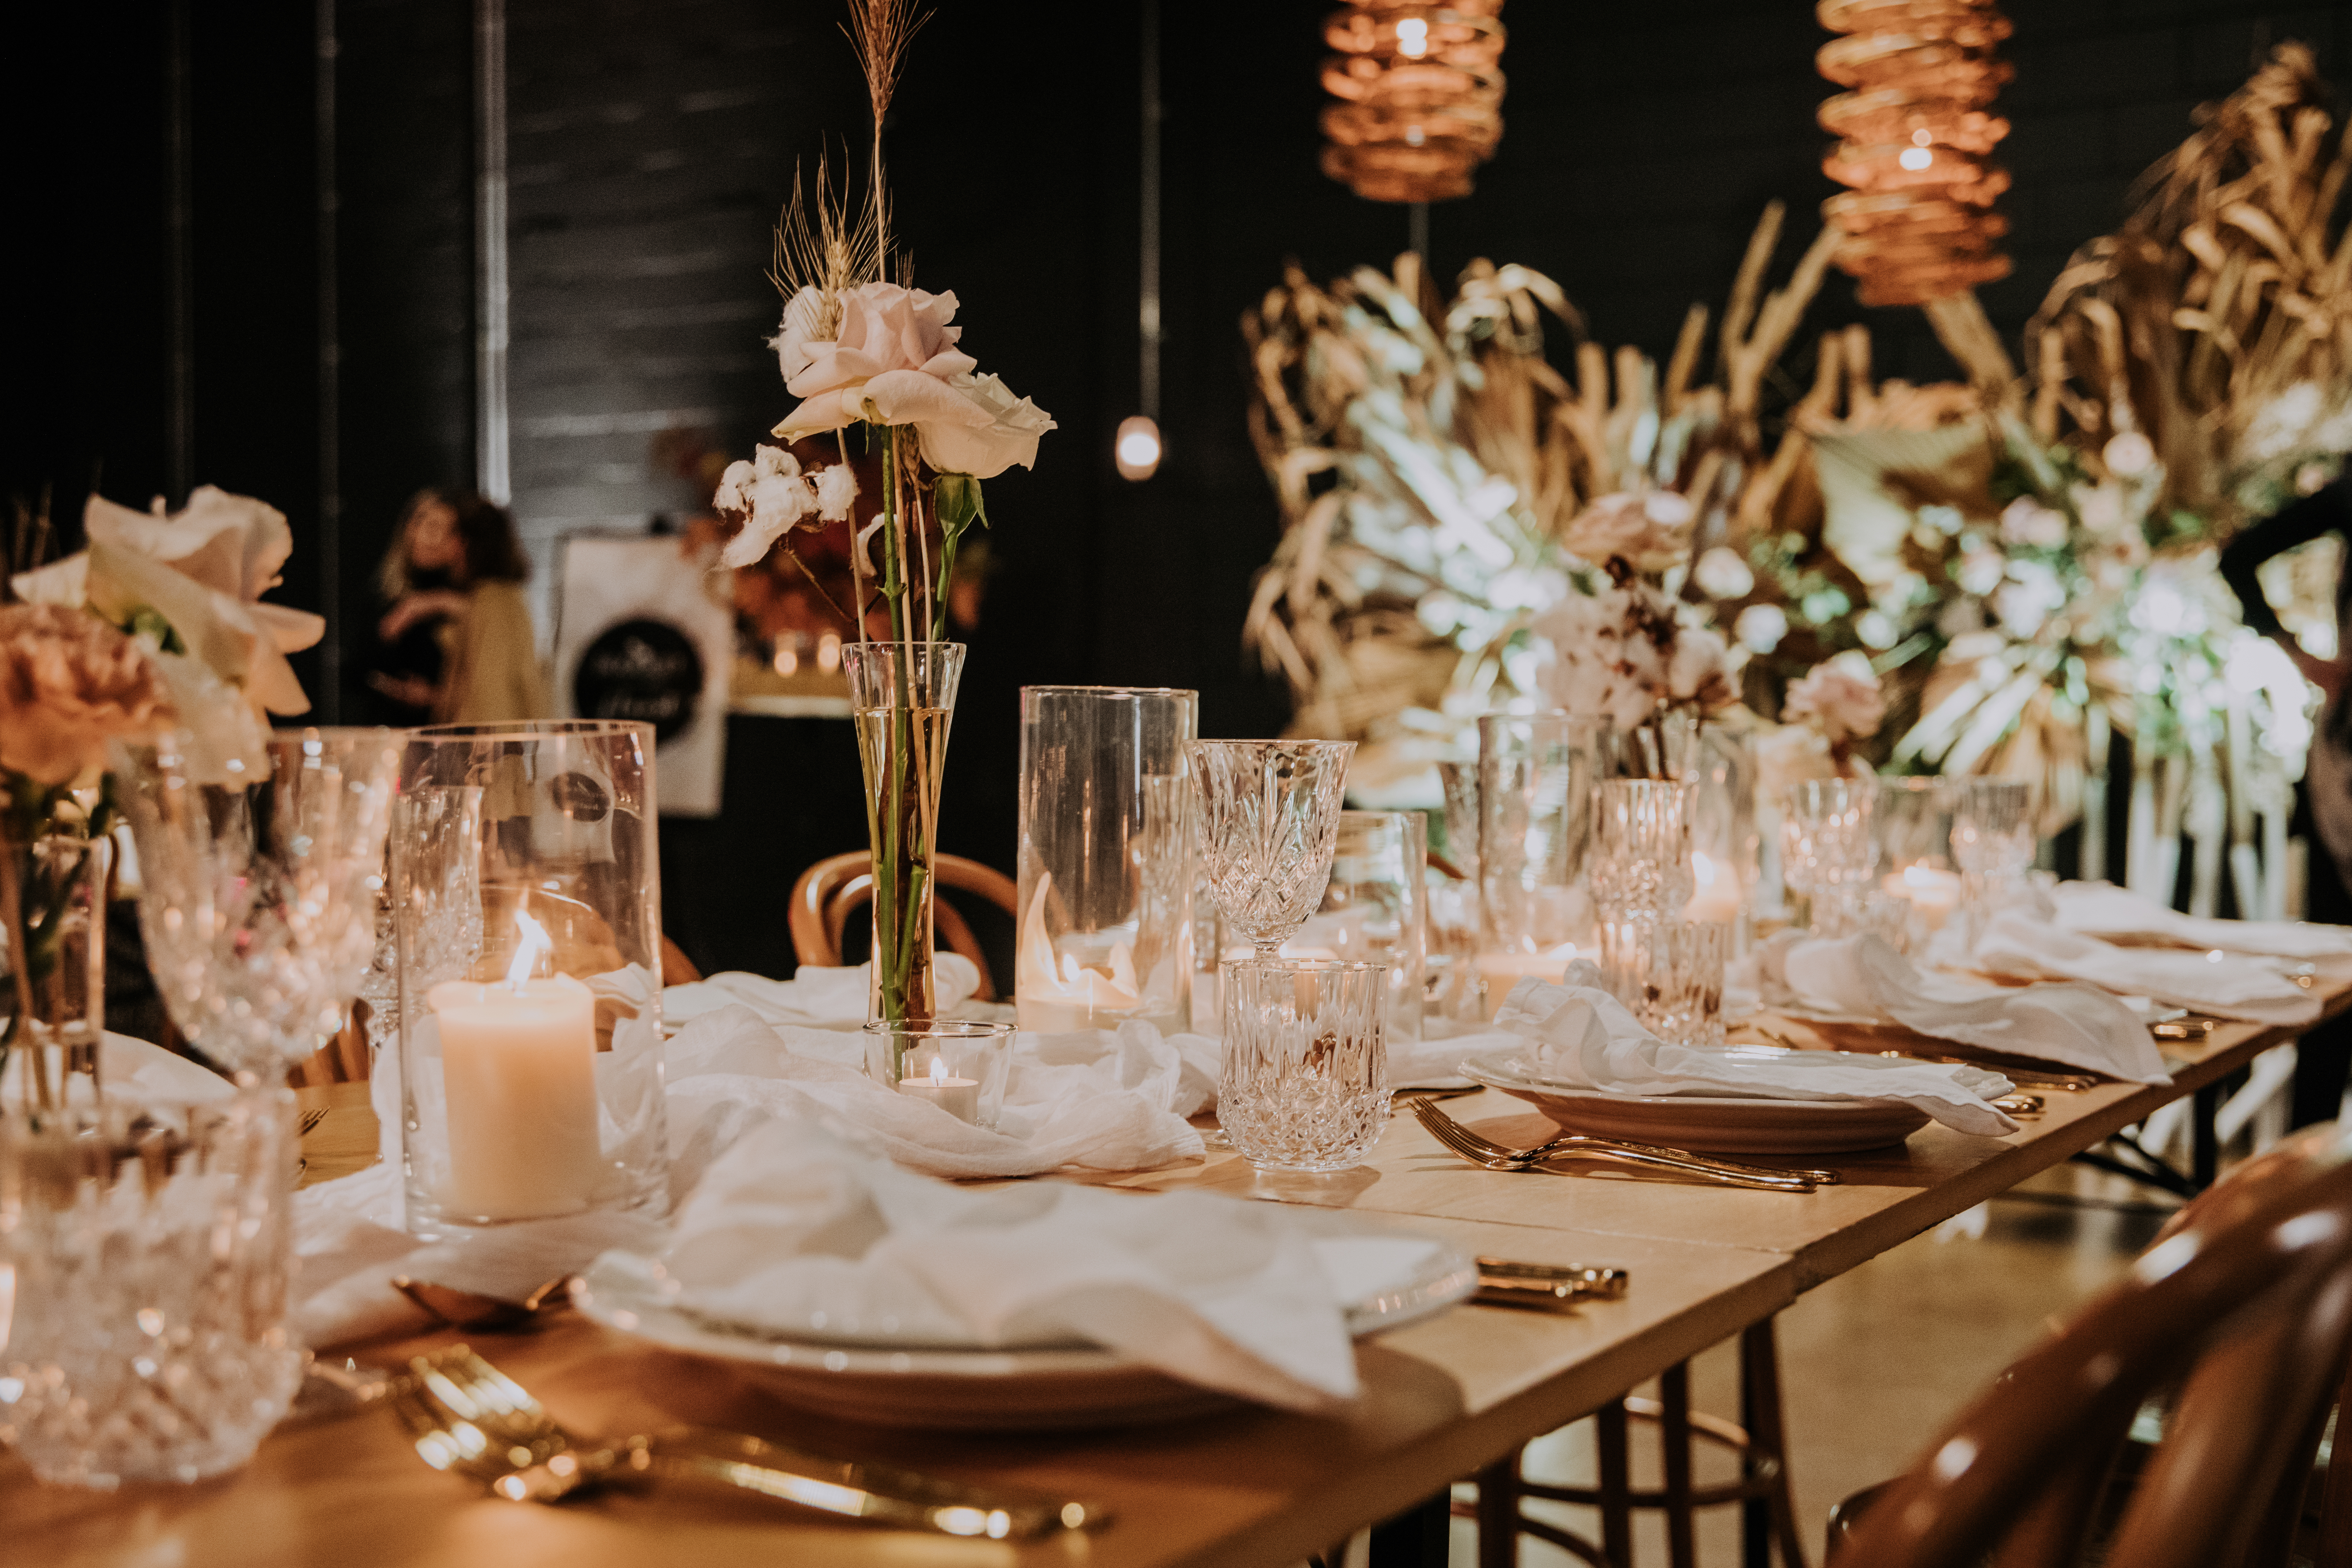 white+white weddings and events the wedding school lightspace studios showcase tablescape textures